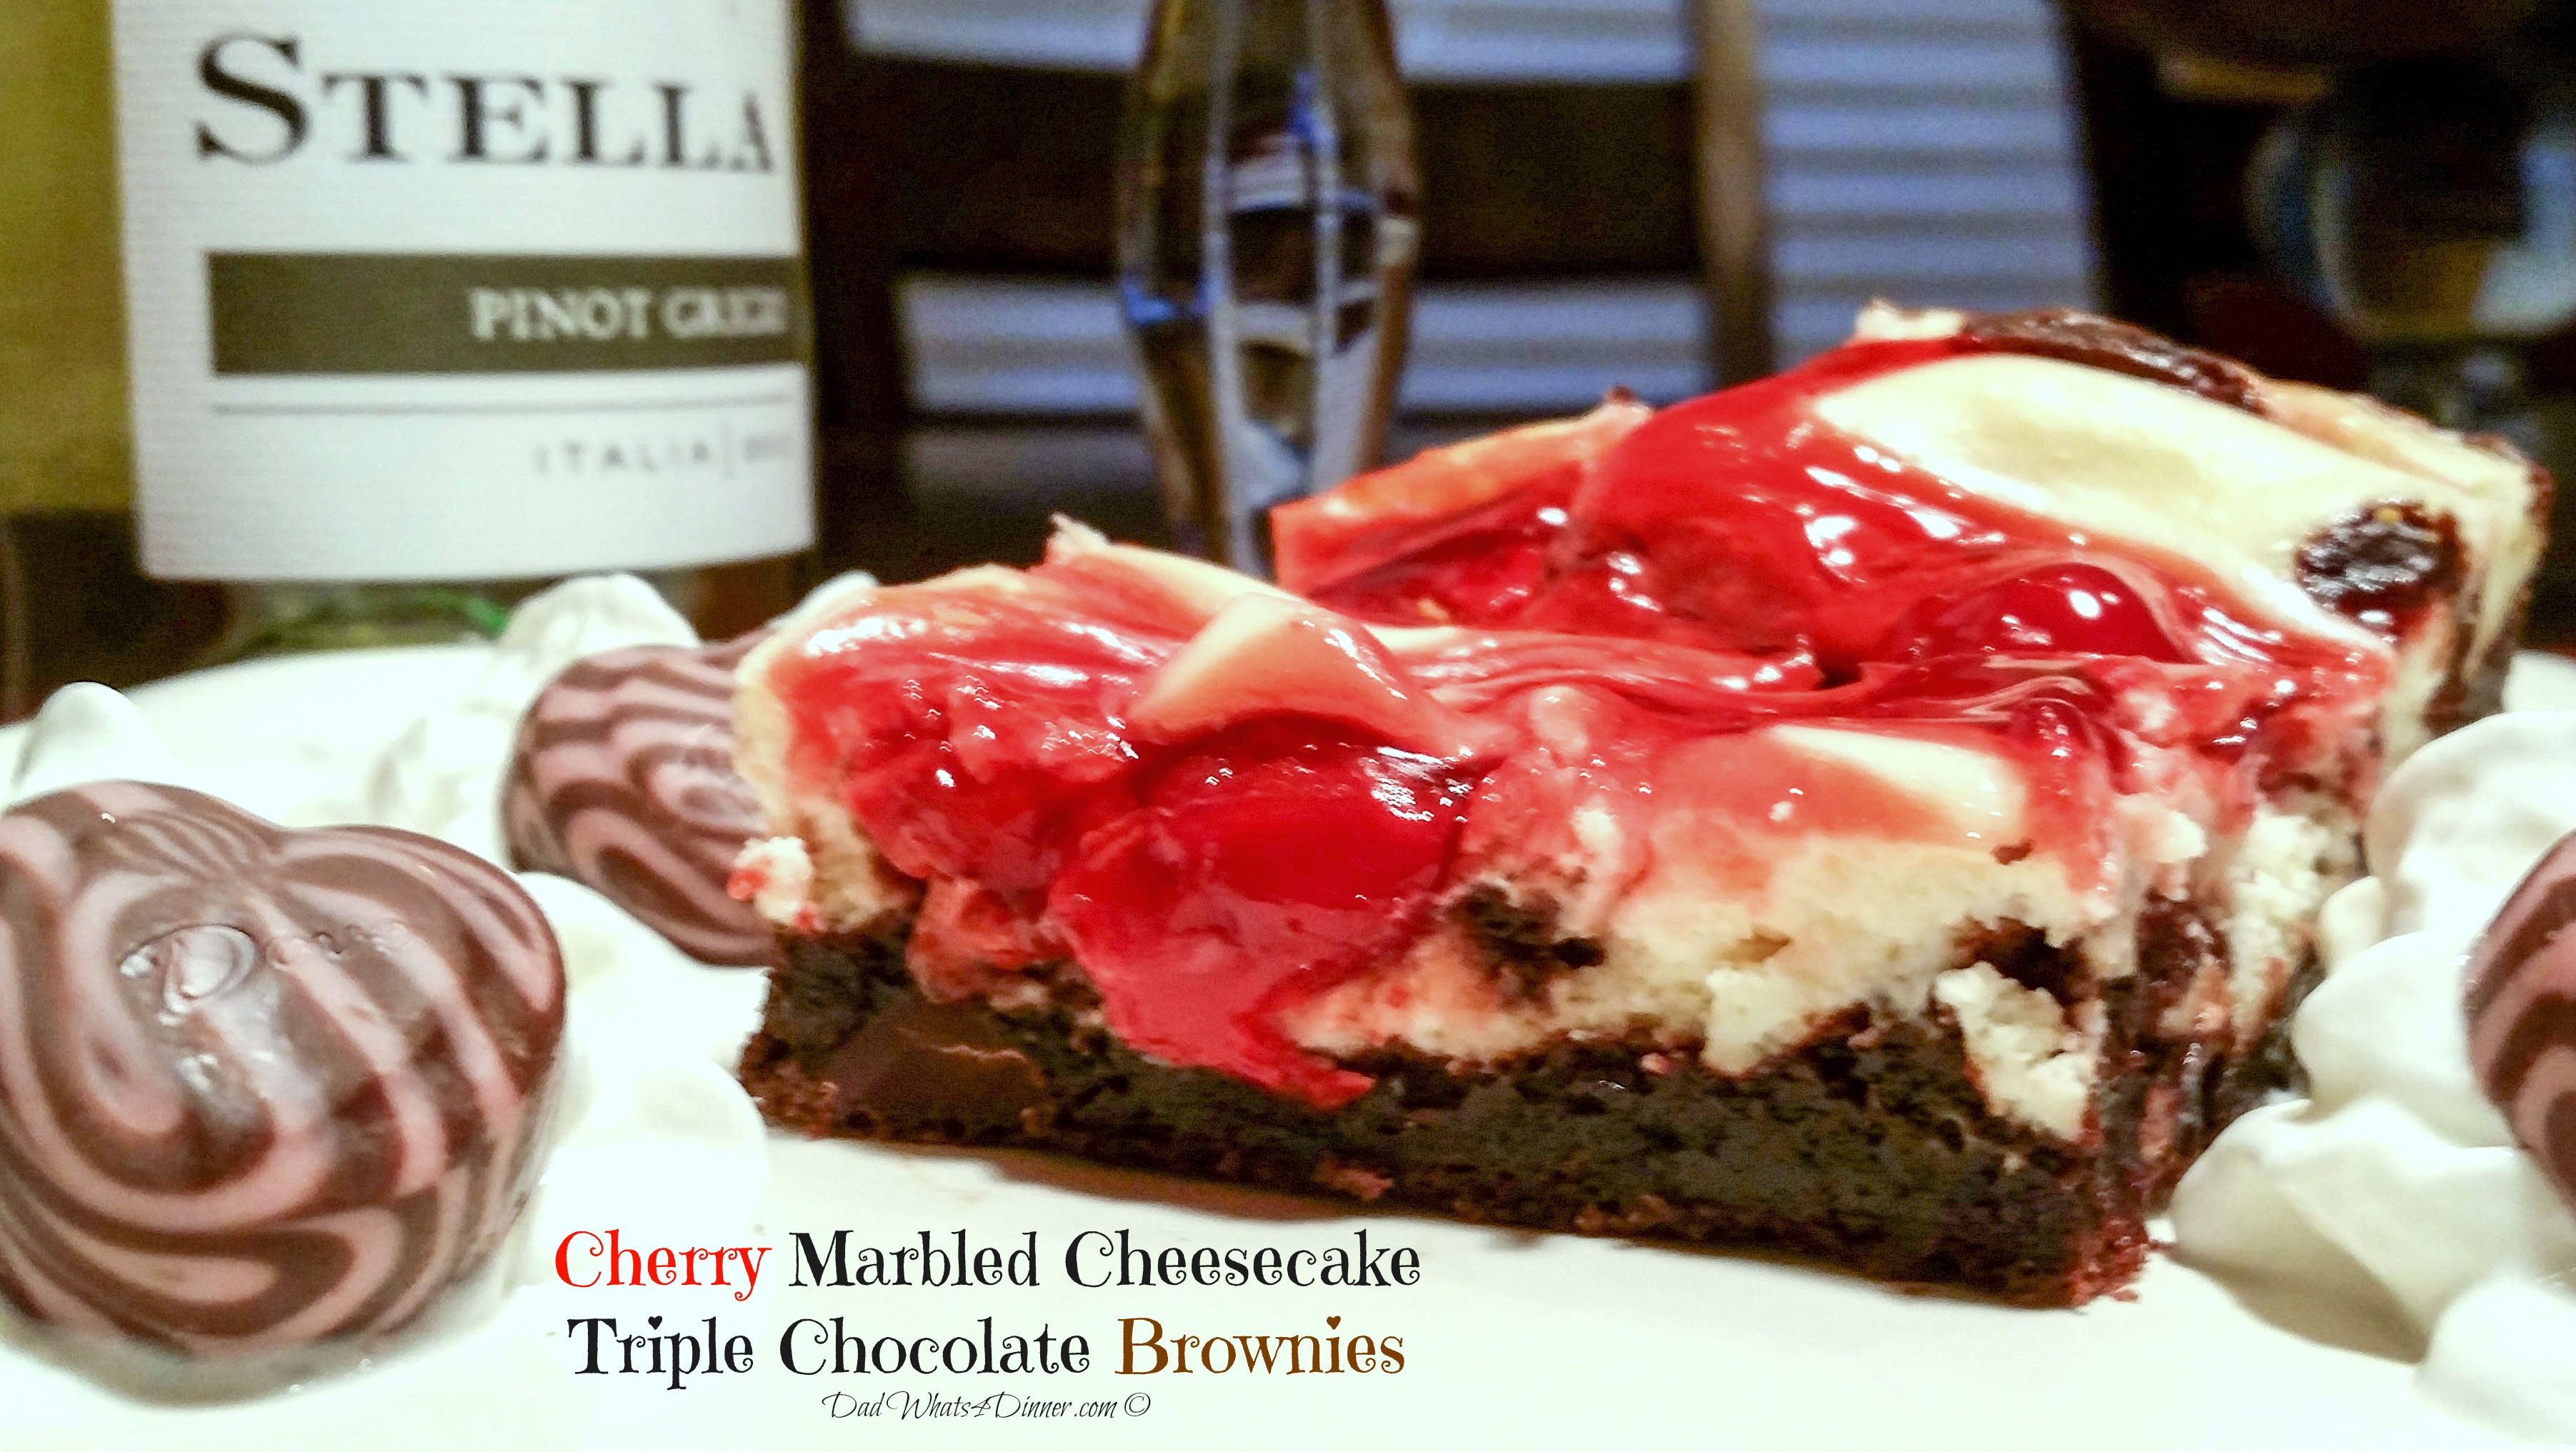 Cherry Marbled Cheesecake Triple Chocolate Brownies | www.dadwhats4dinner.com ©